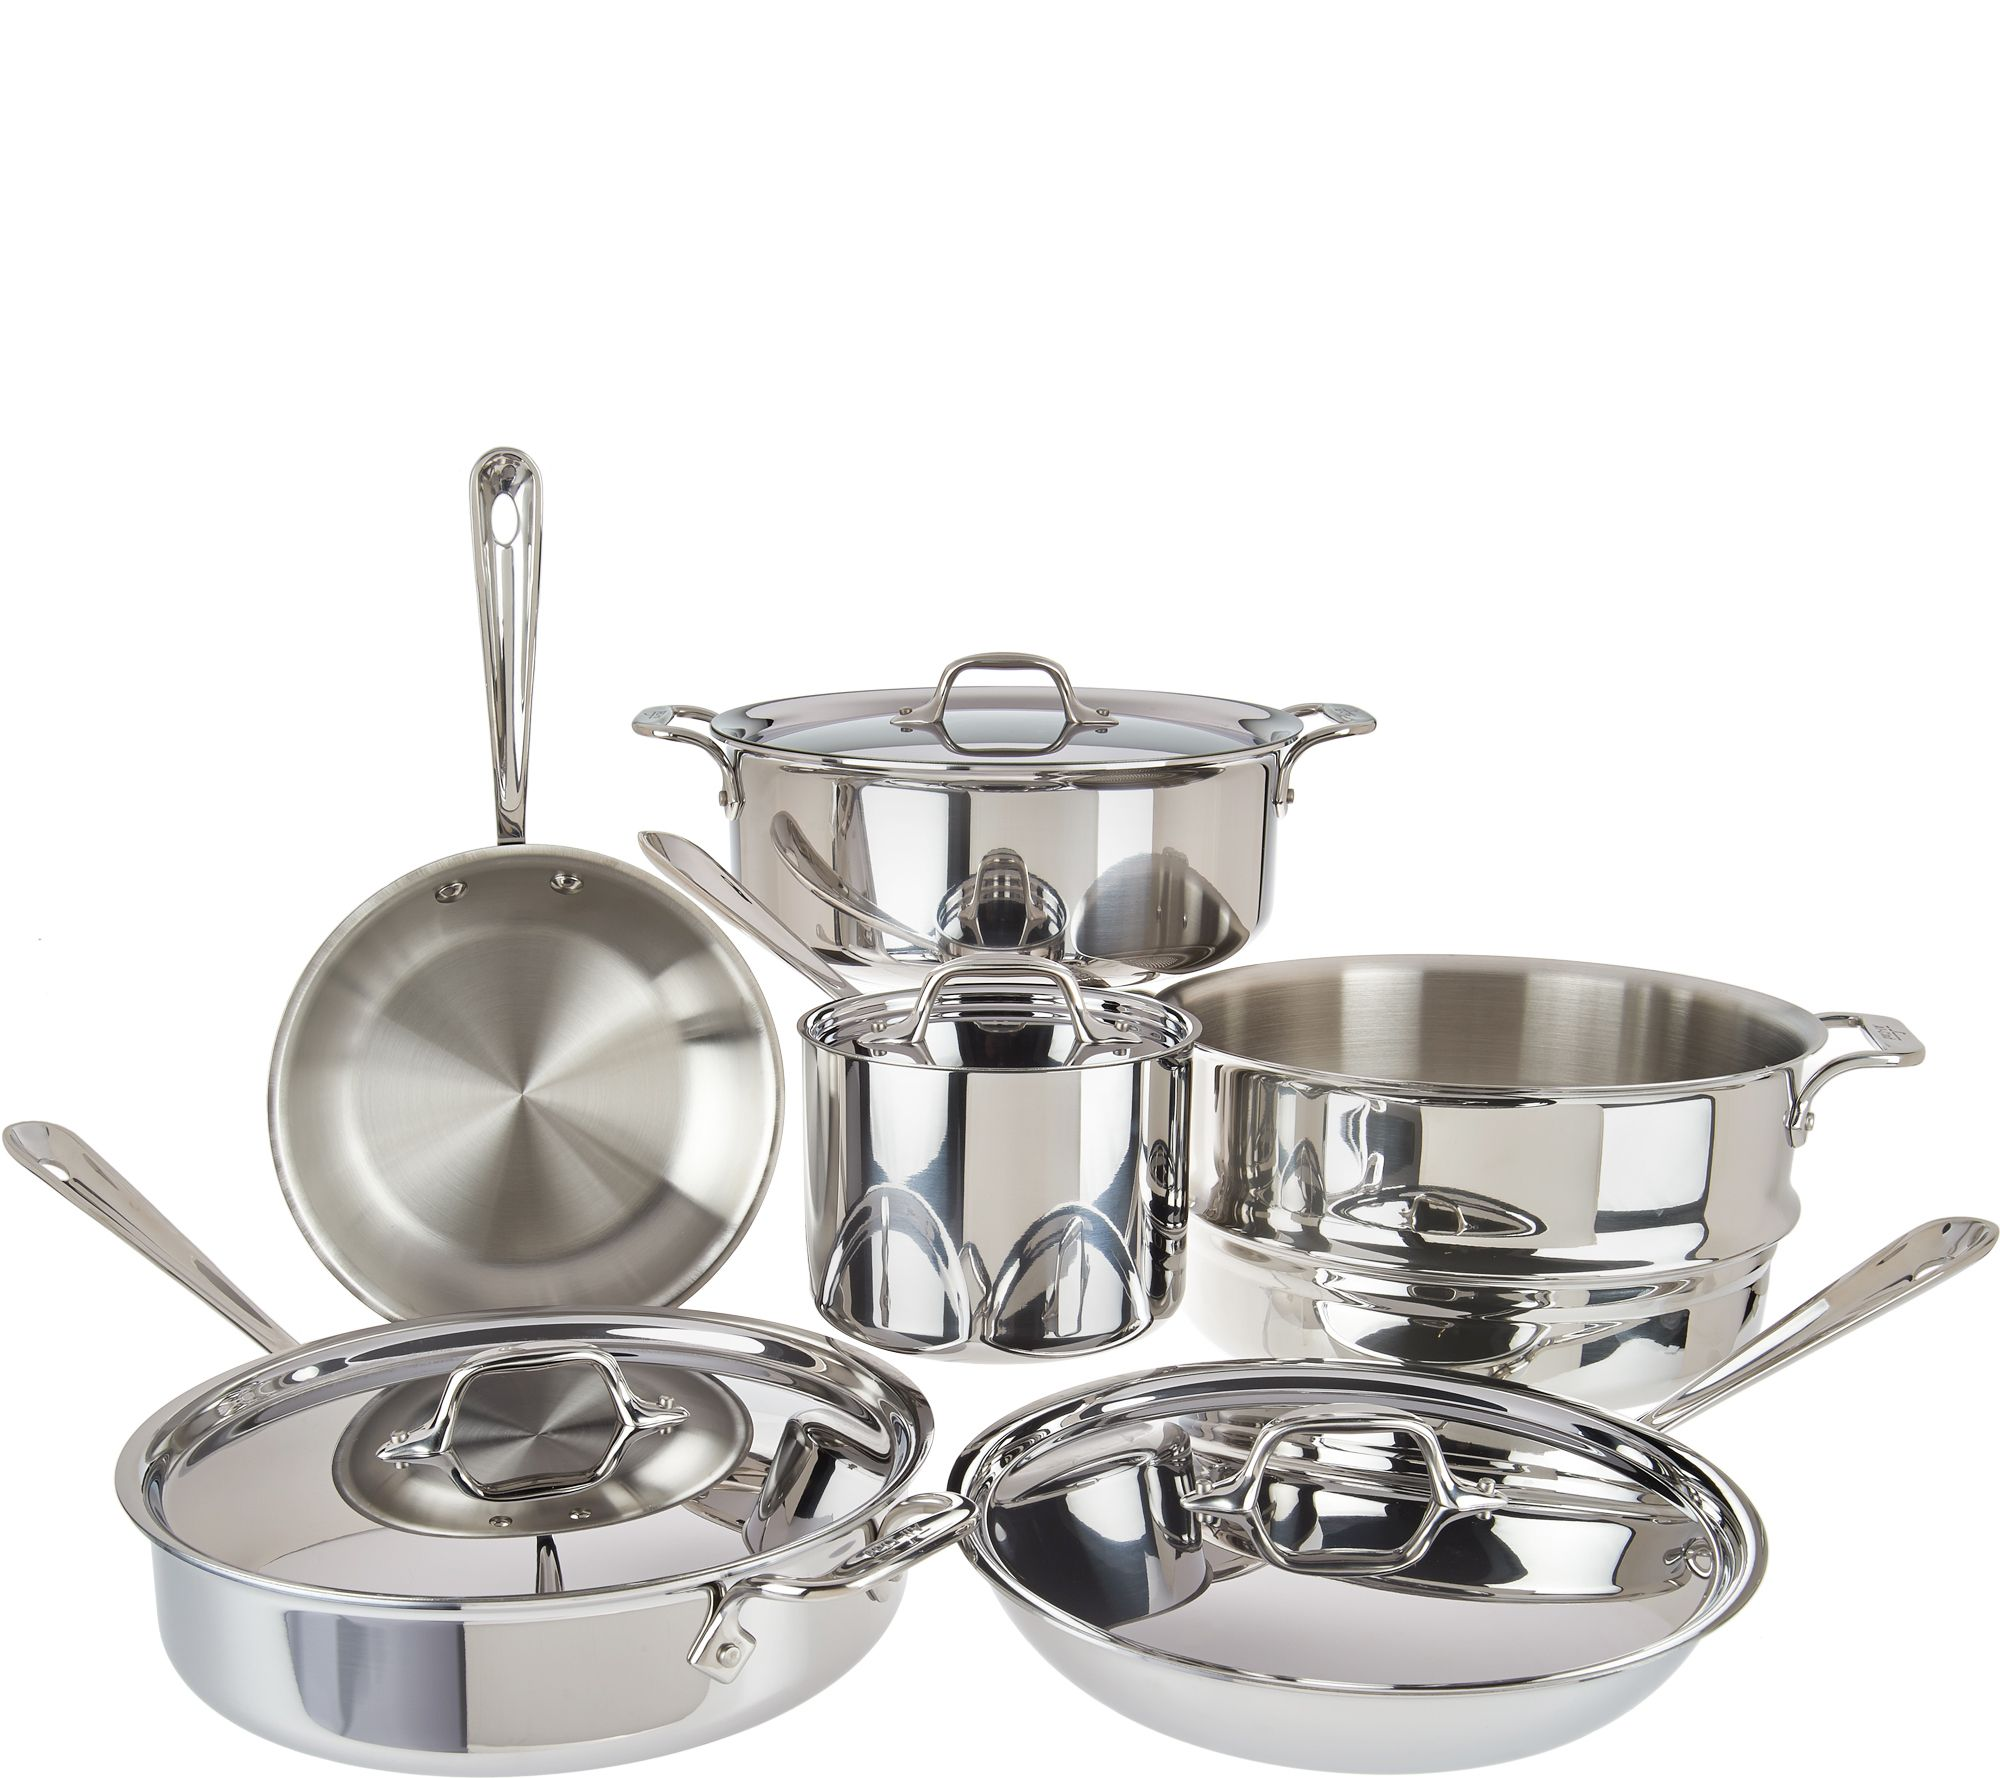 All-Clad Tri-Ply Stainless Steel 10-piece Cookware Set - Page 1 ...